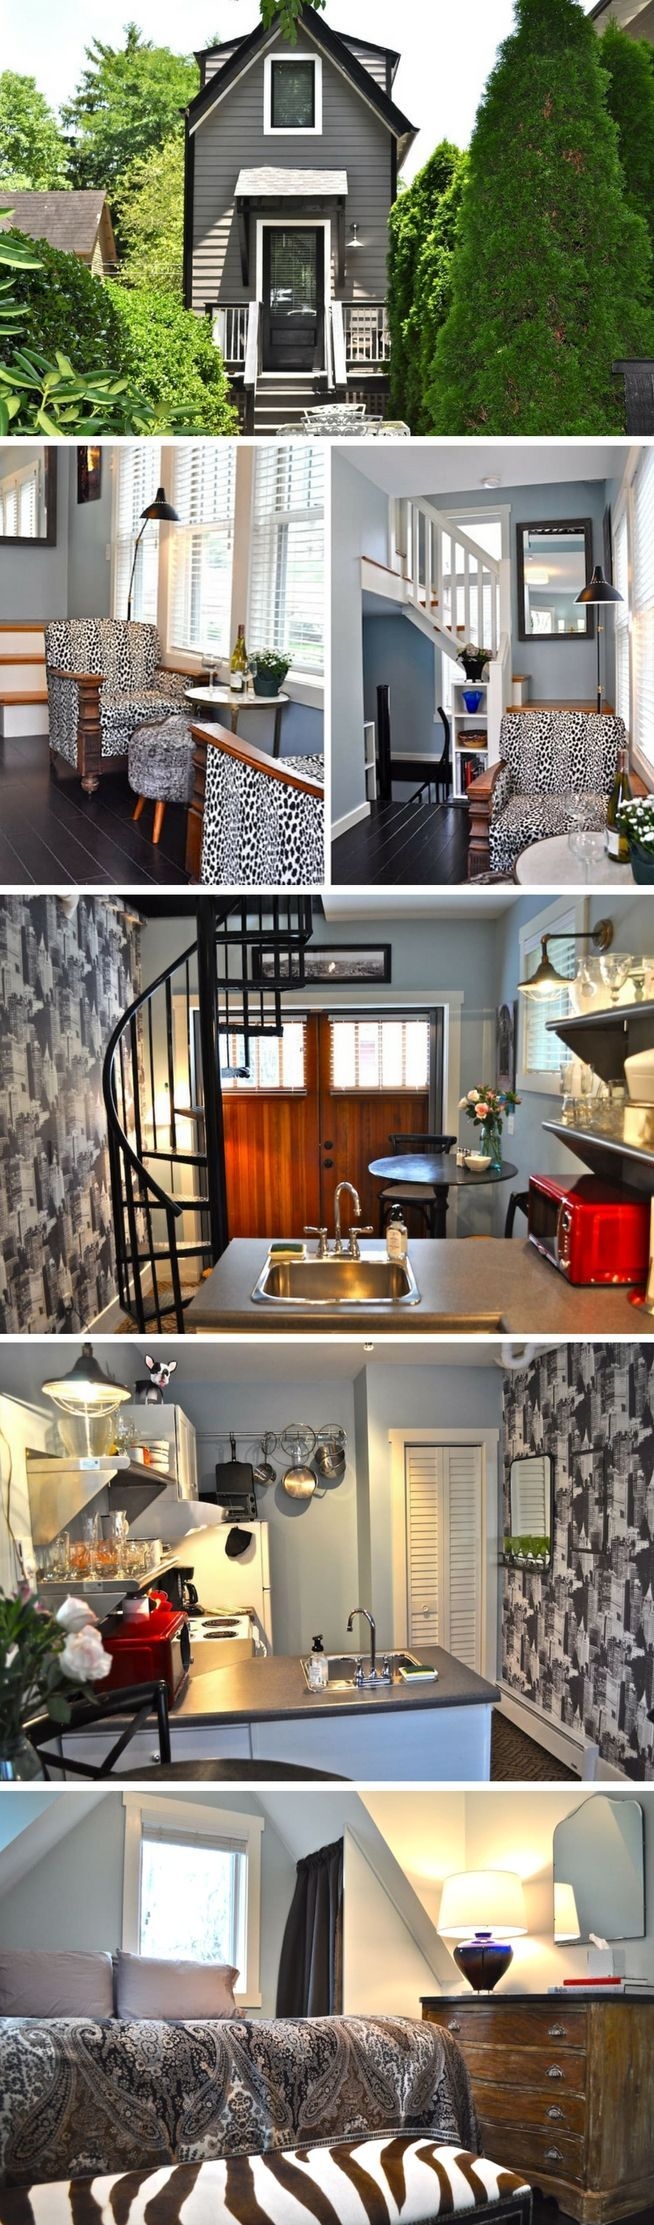 845 best tiny homes images on pinterest small homes tiny house a three story and 400 sq ft tiny house in asheville nc